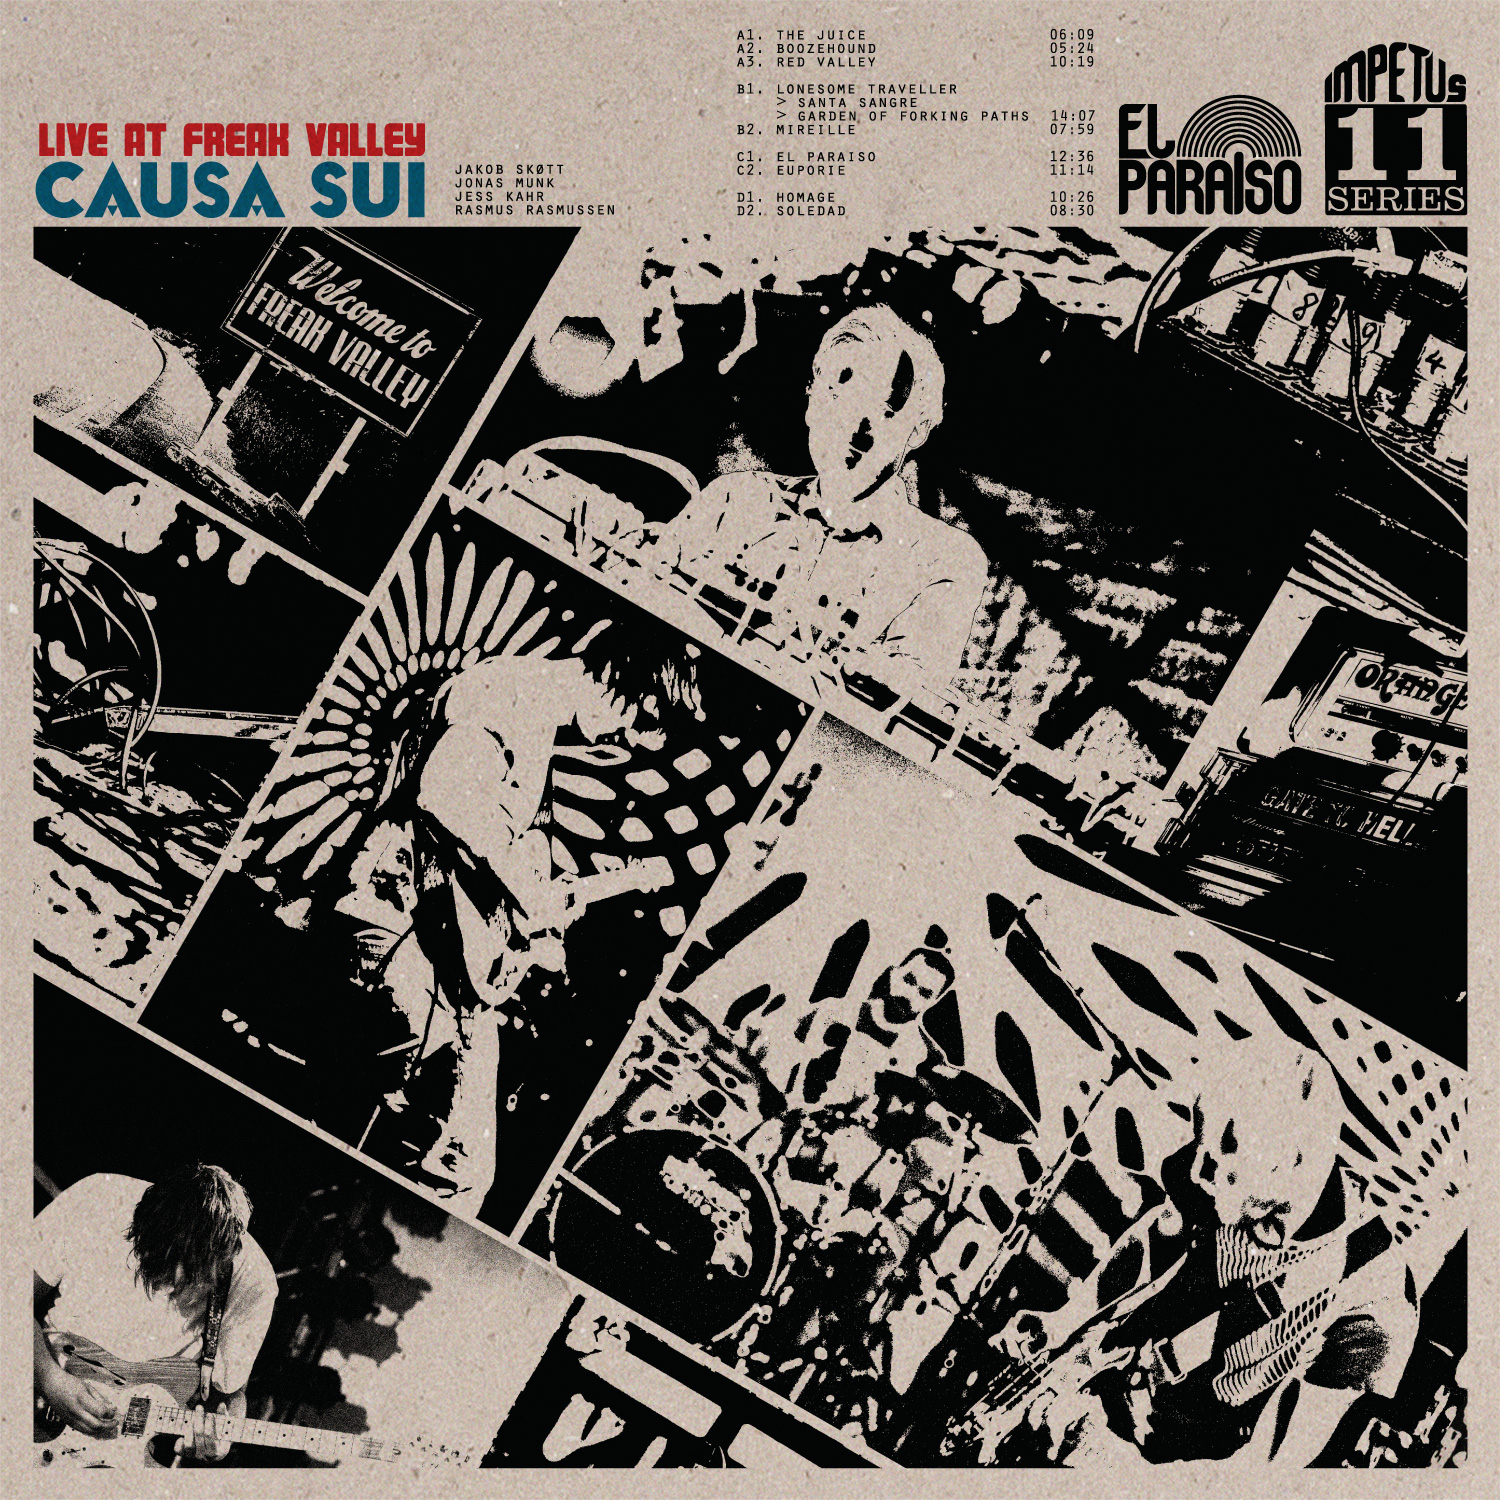 CAUSA SUI.  Causa-sui-live-at-freak-valley1